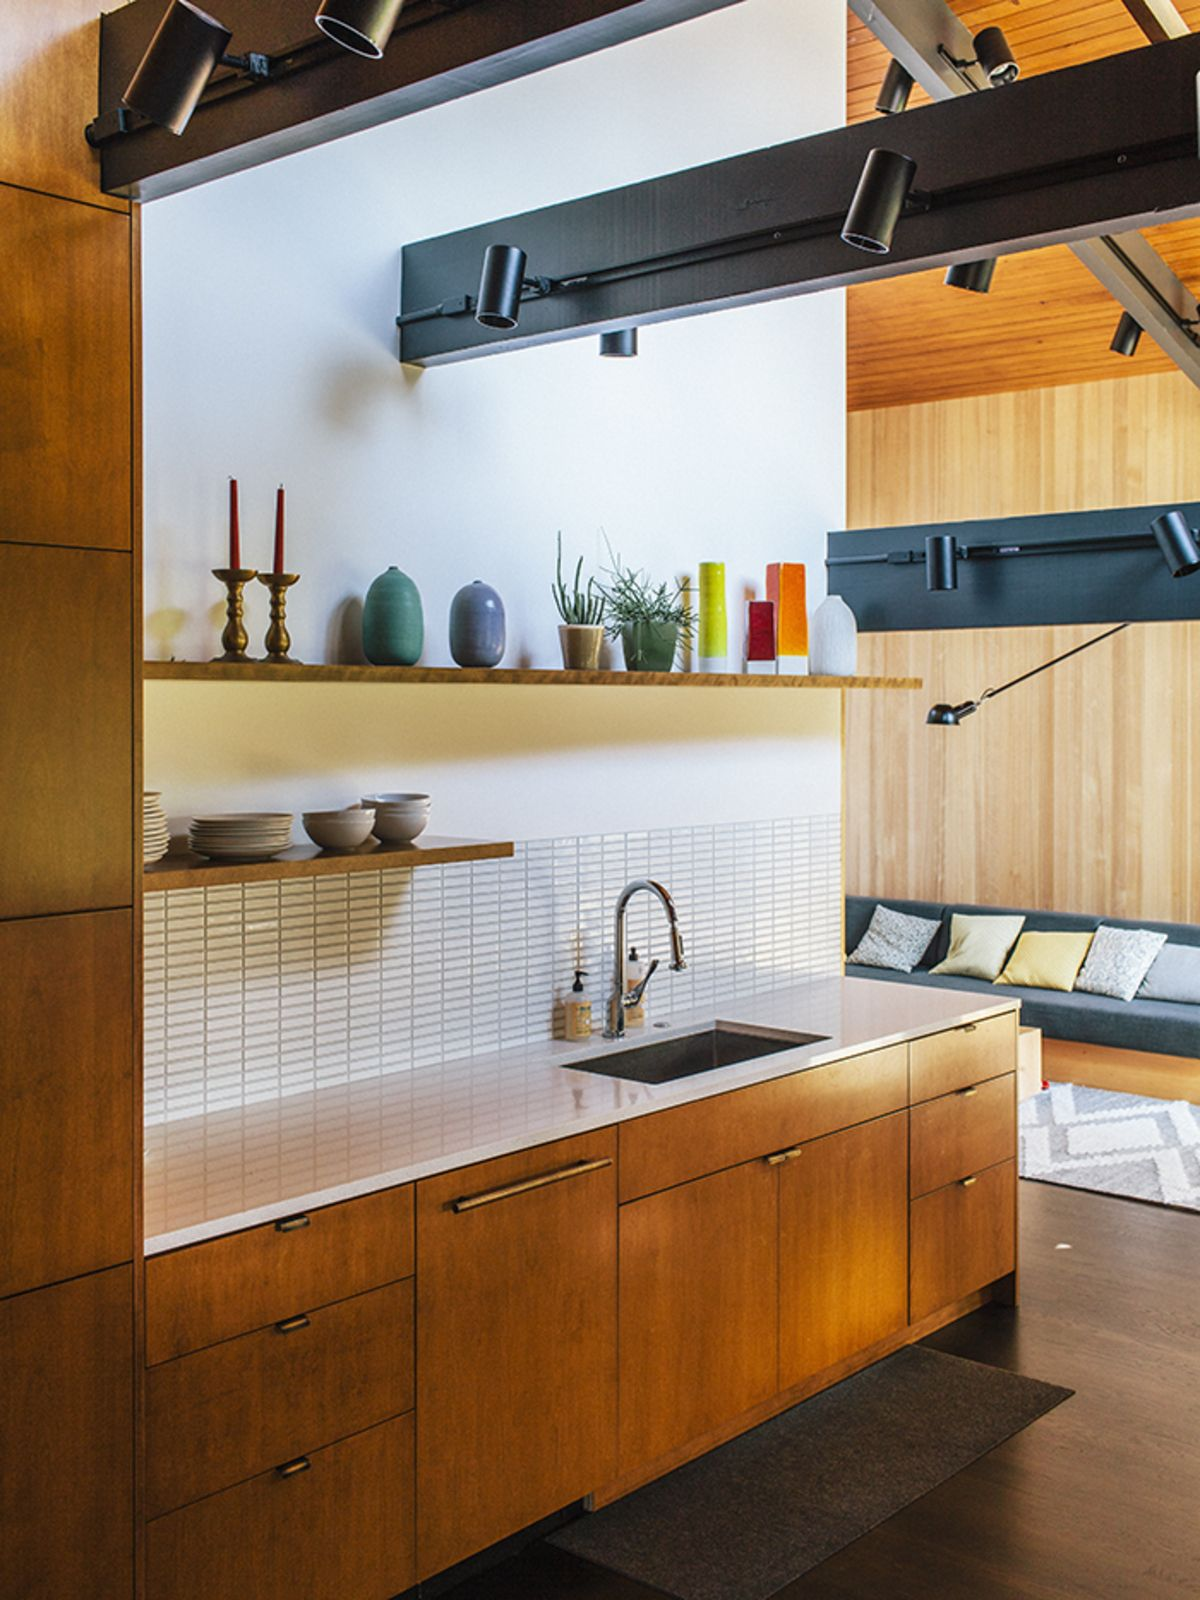 Midcentury renovation in portland capitalizes on nature with seven